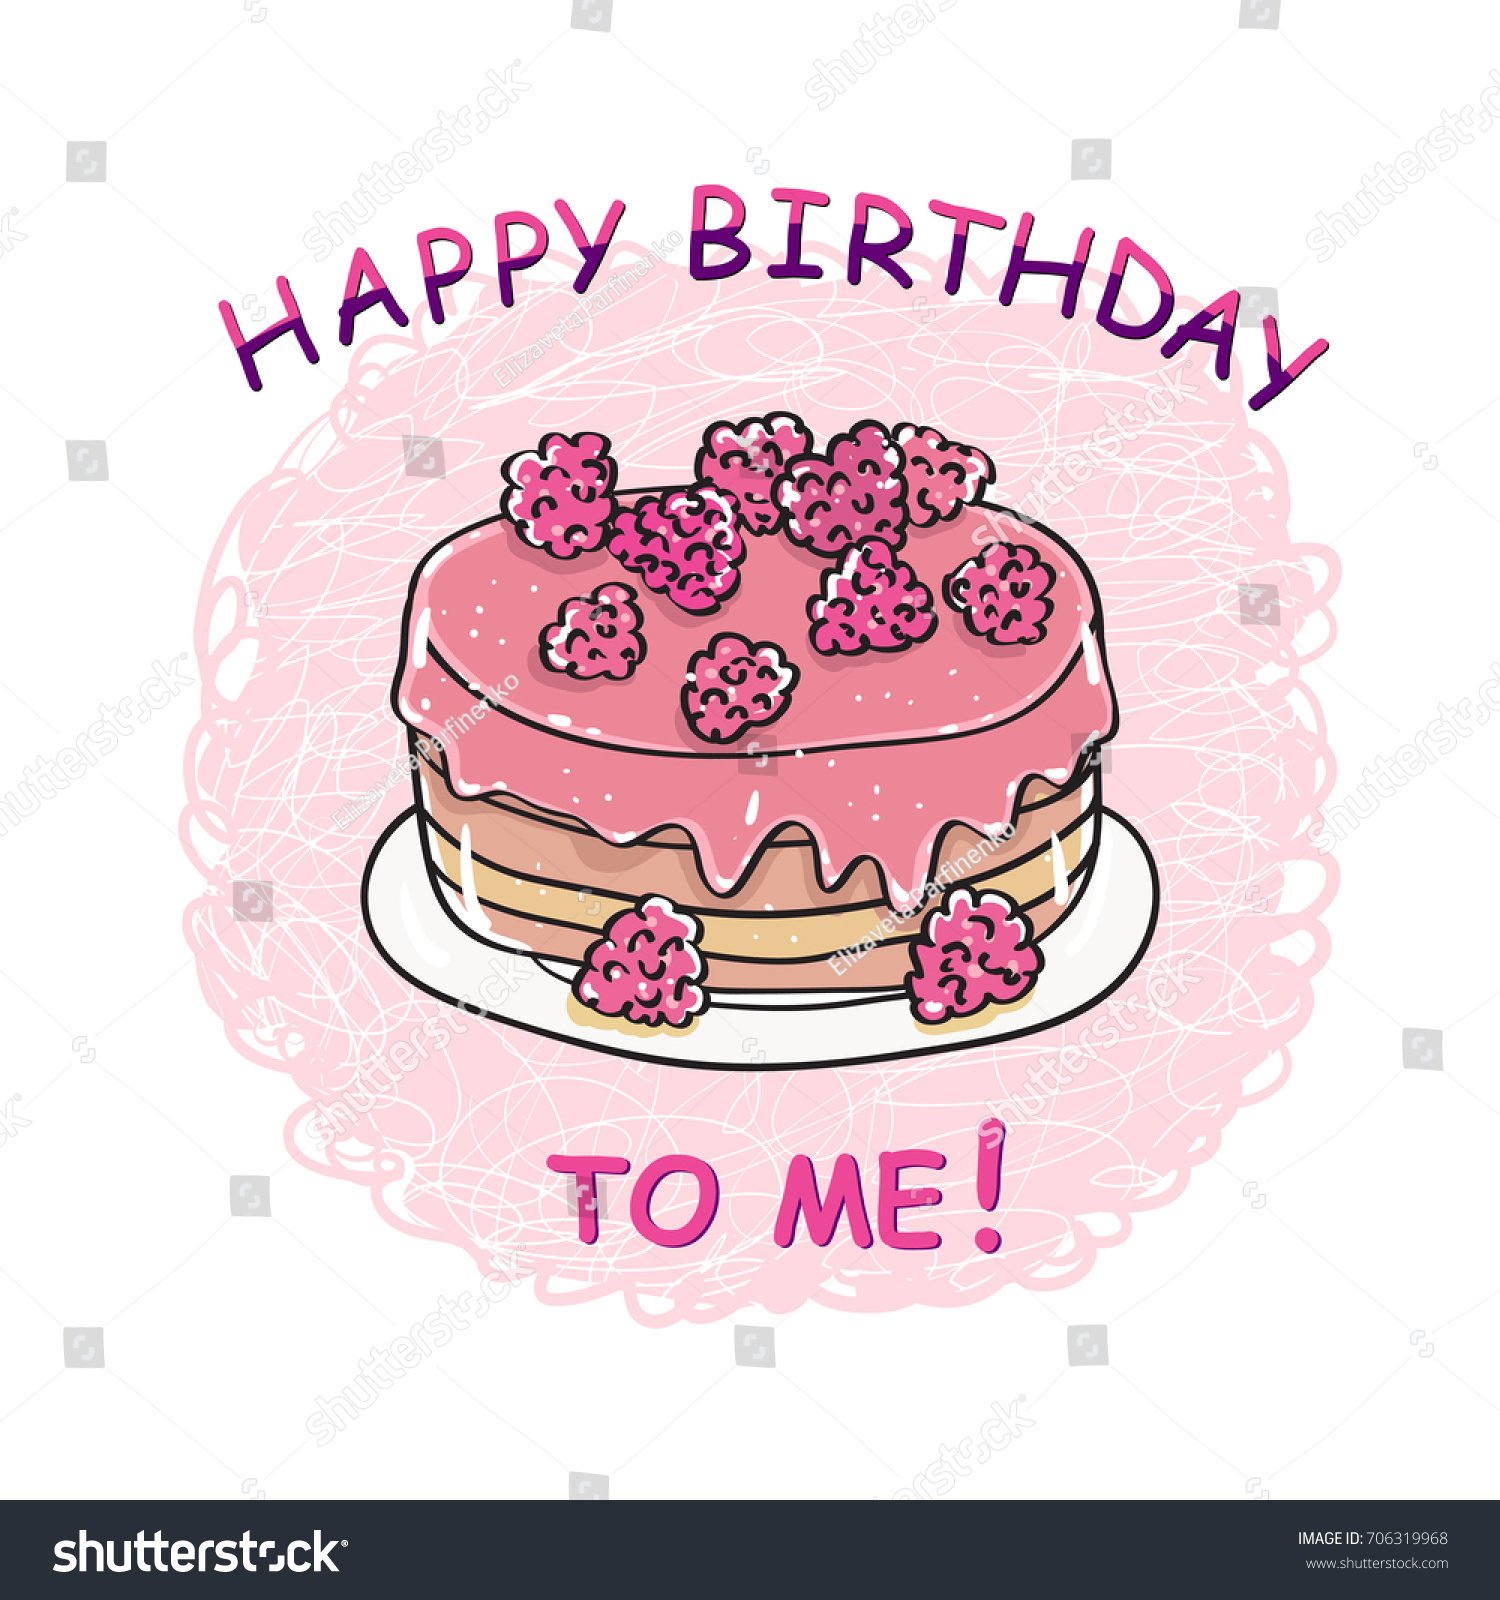 Wonderful Happy Birthday To Me. Birthday Cake. Happy Birthday Card Template. Vector.